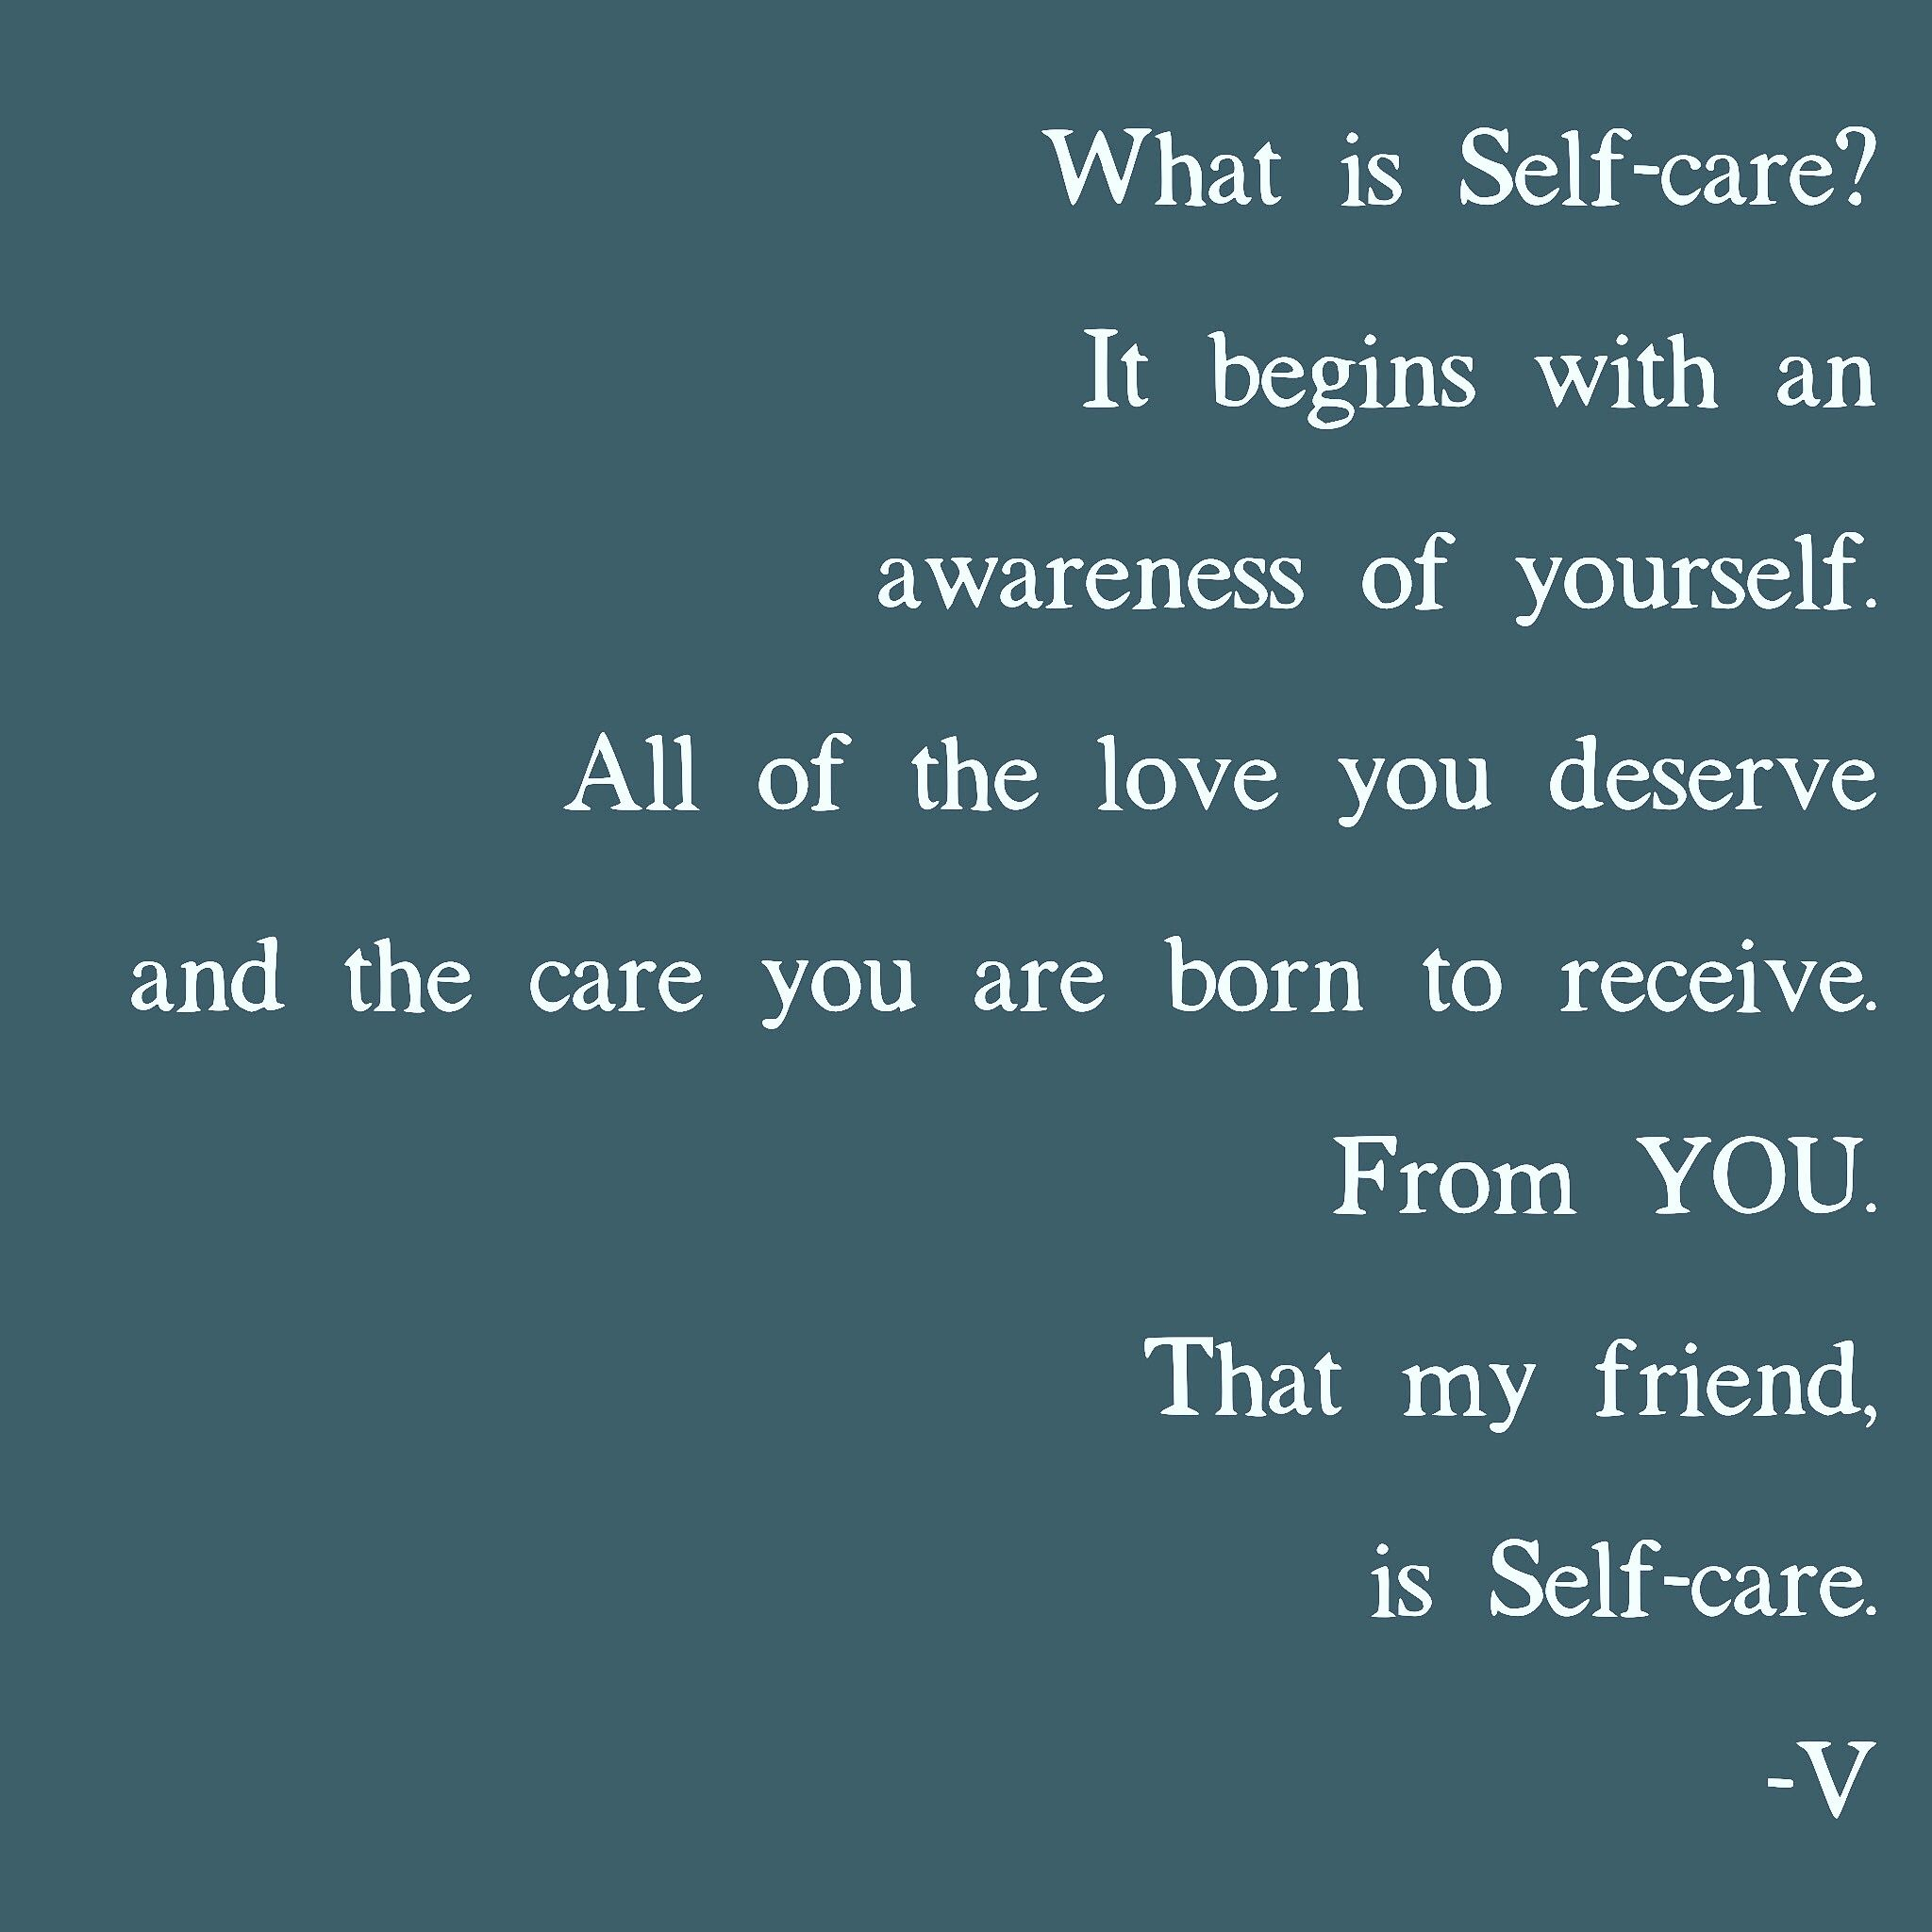 Selfcare means many things to many people. Share your